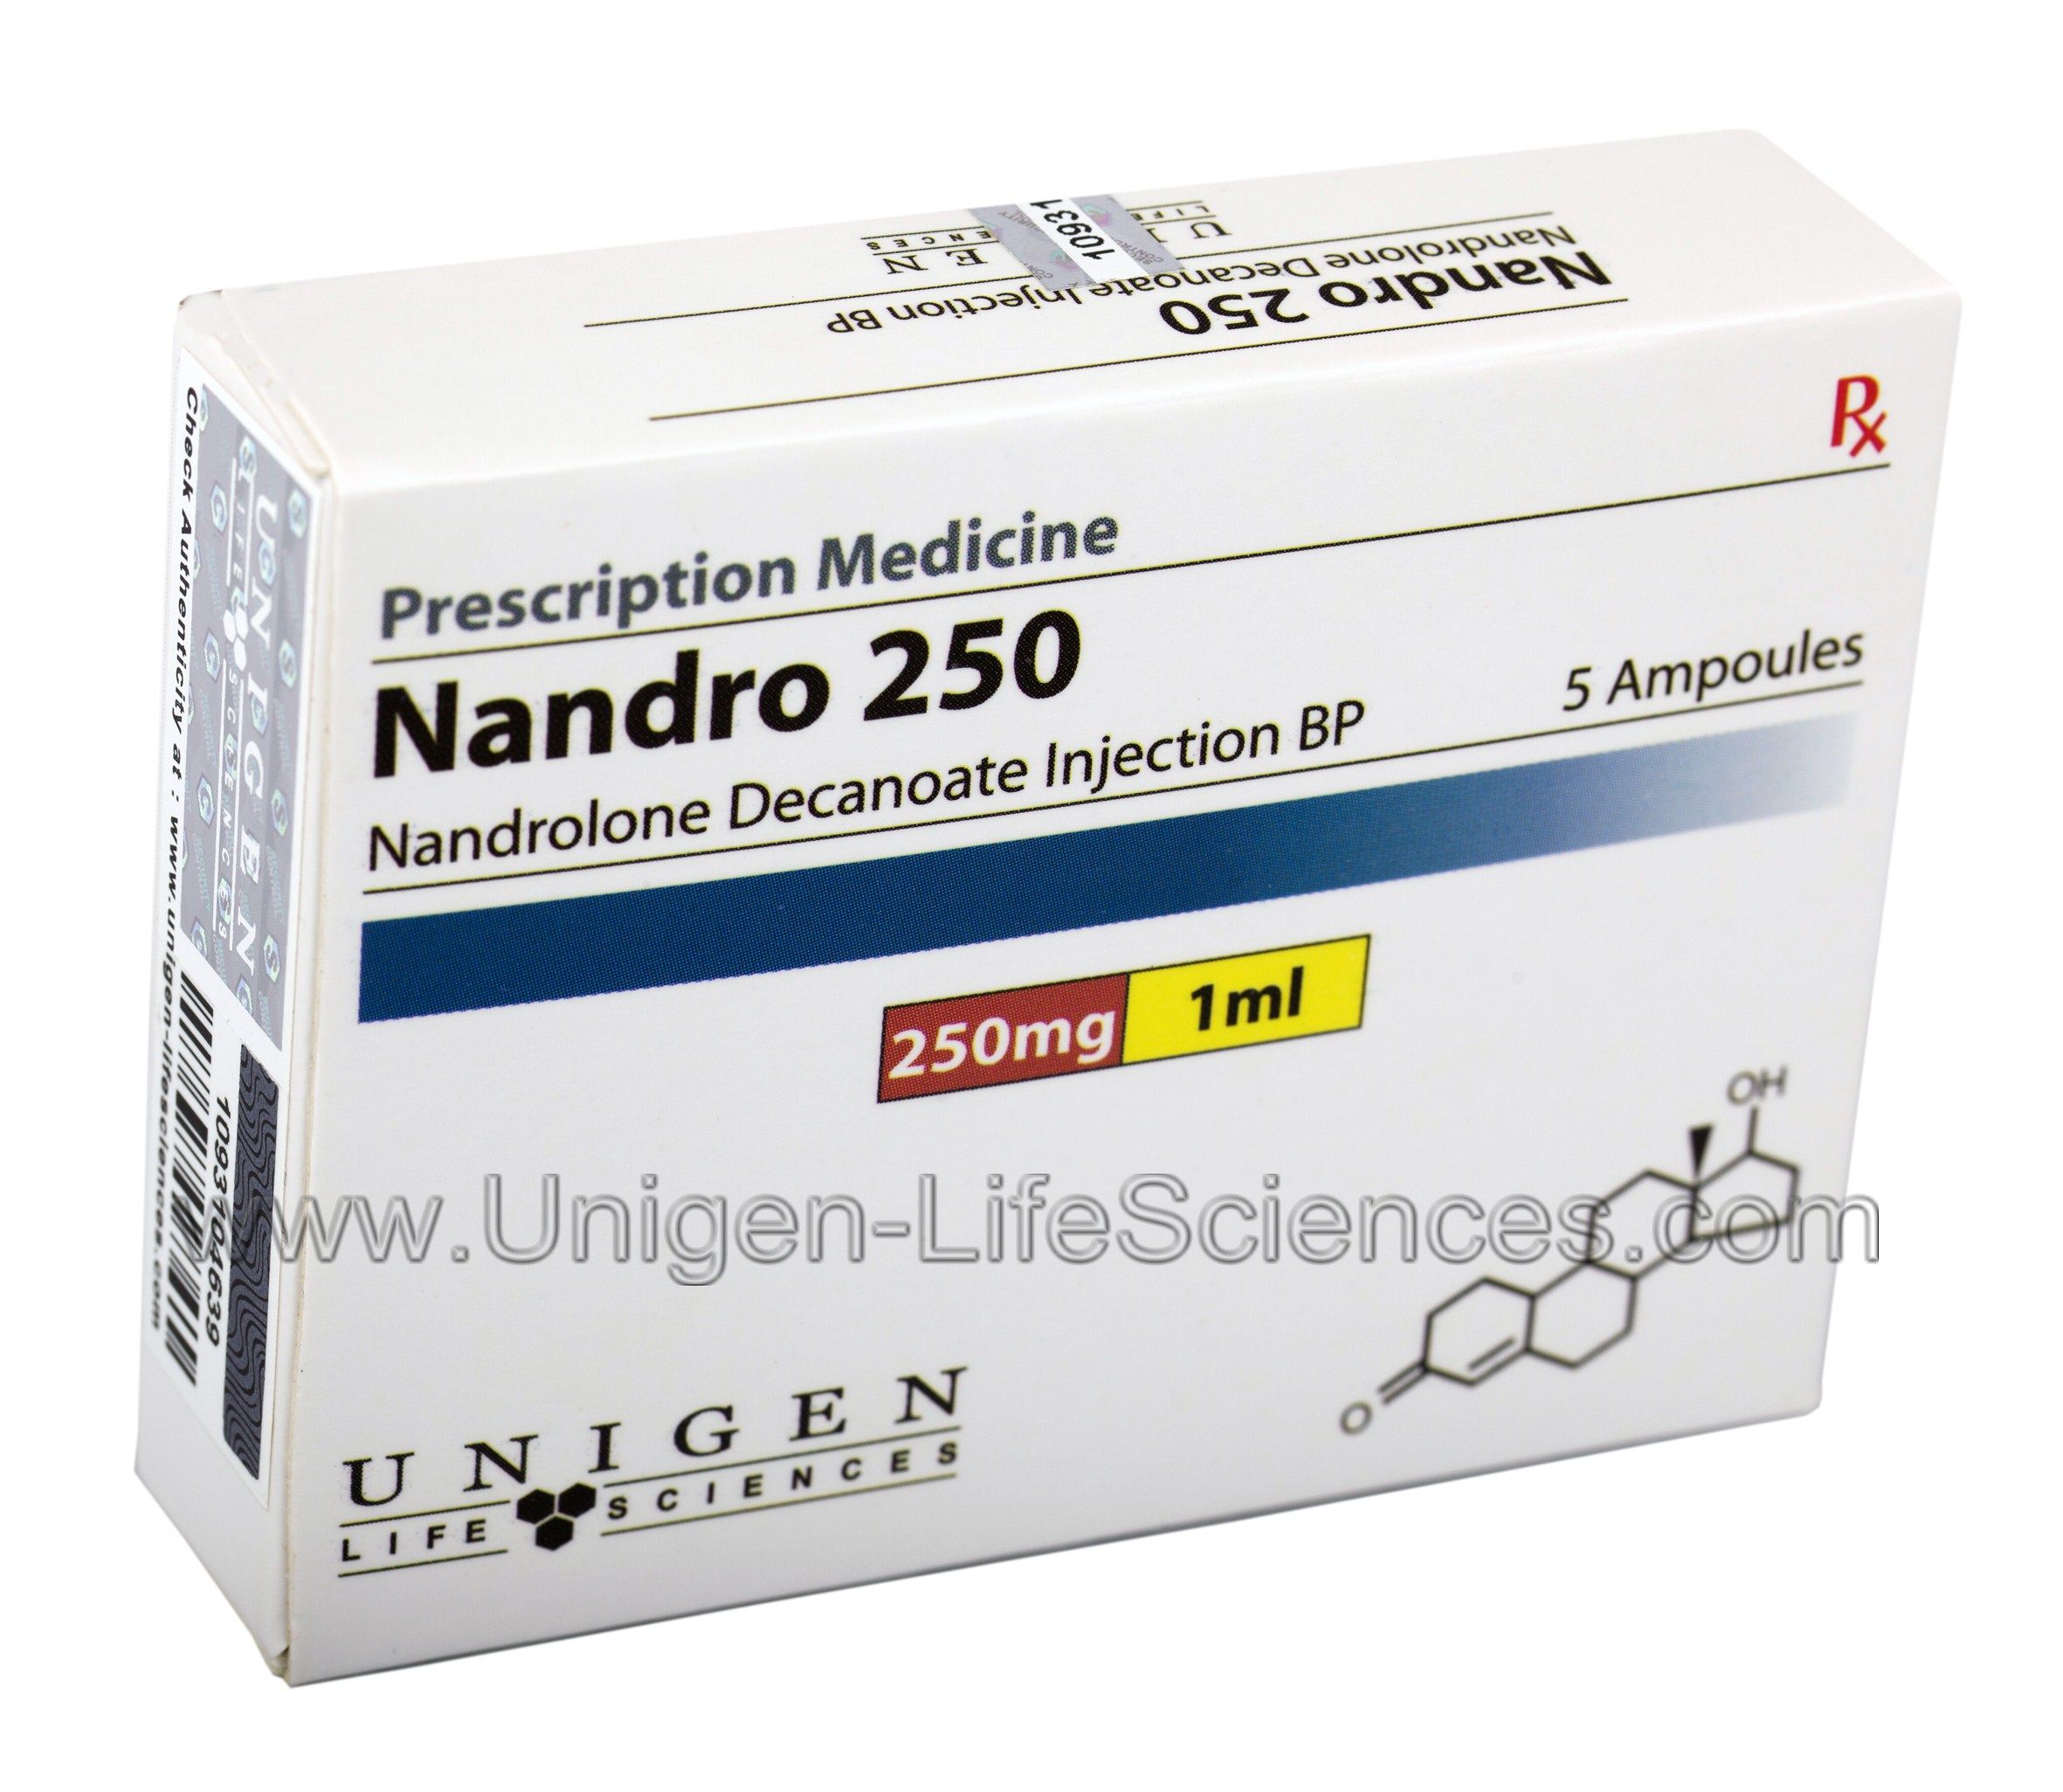 nandrolone decanoate injection ip 50 mg price